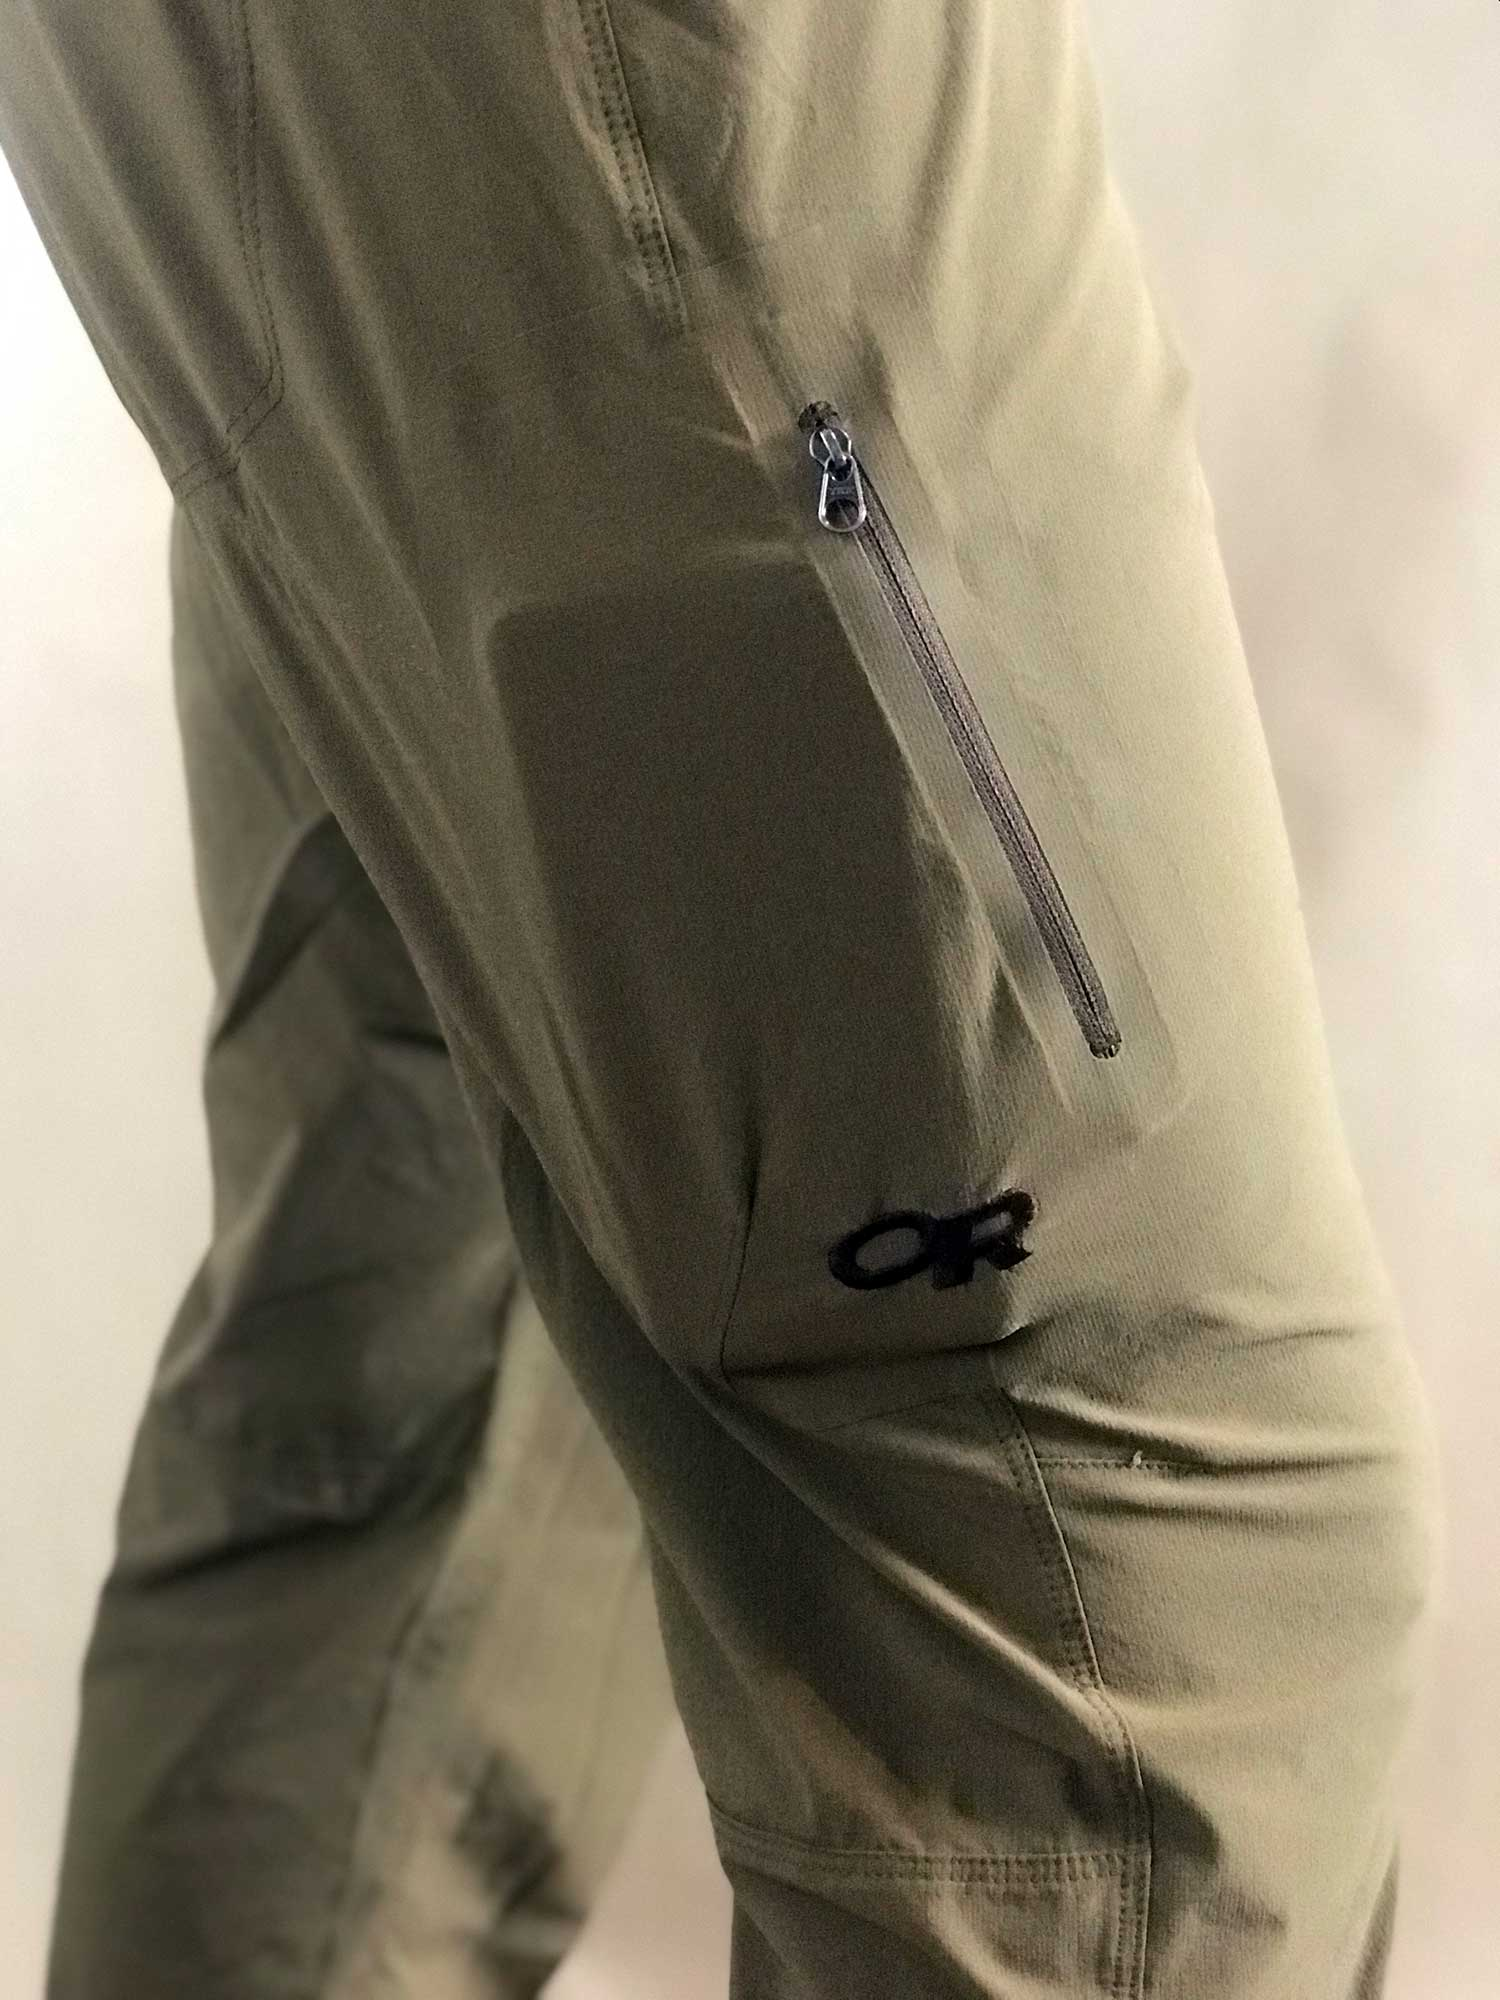 Vertical zippered thigh pocket. The low profile means items don't flop around.